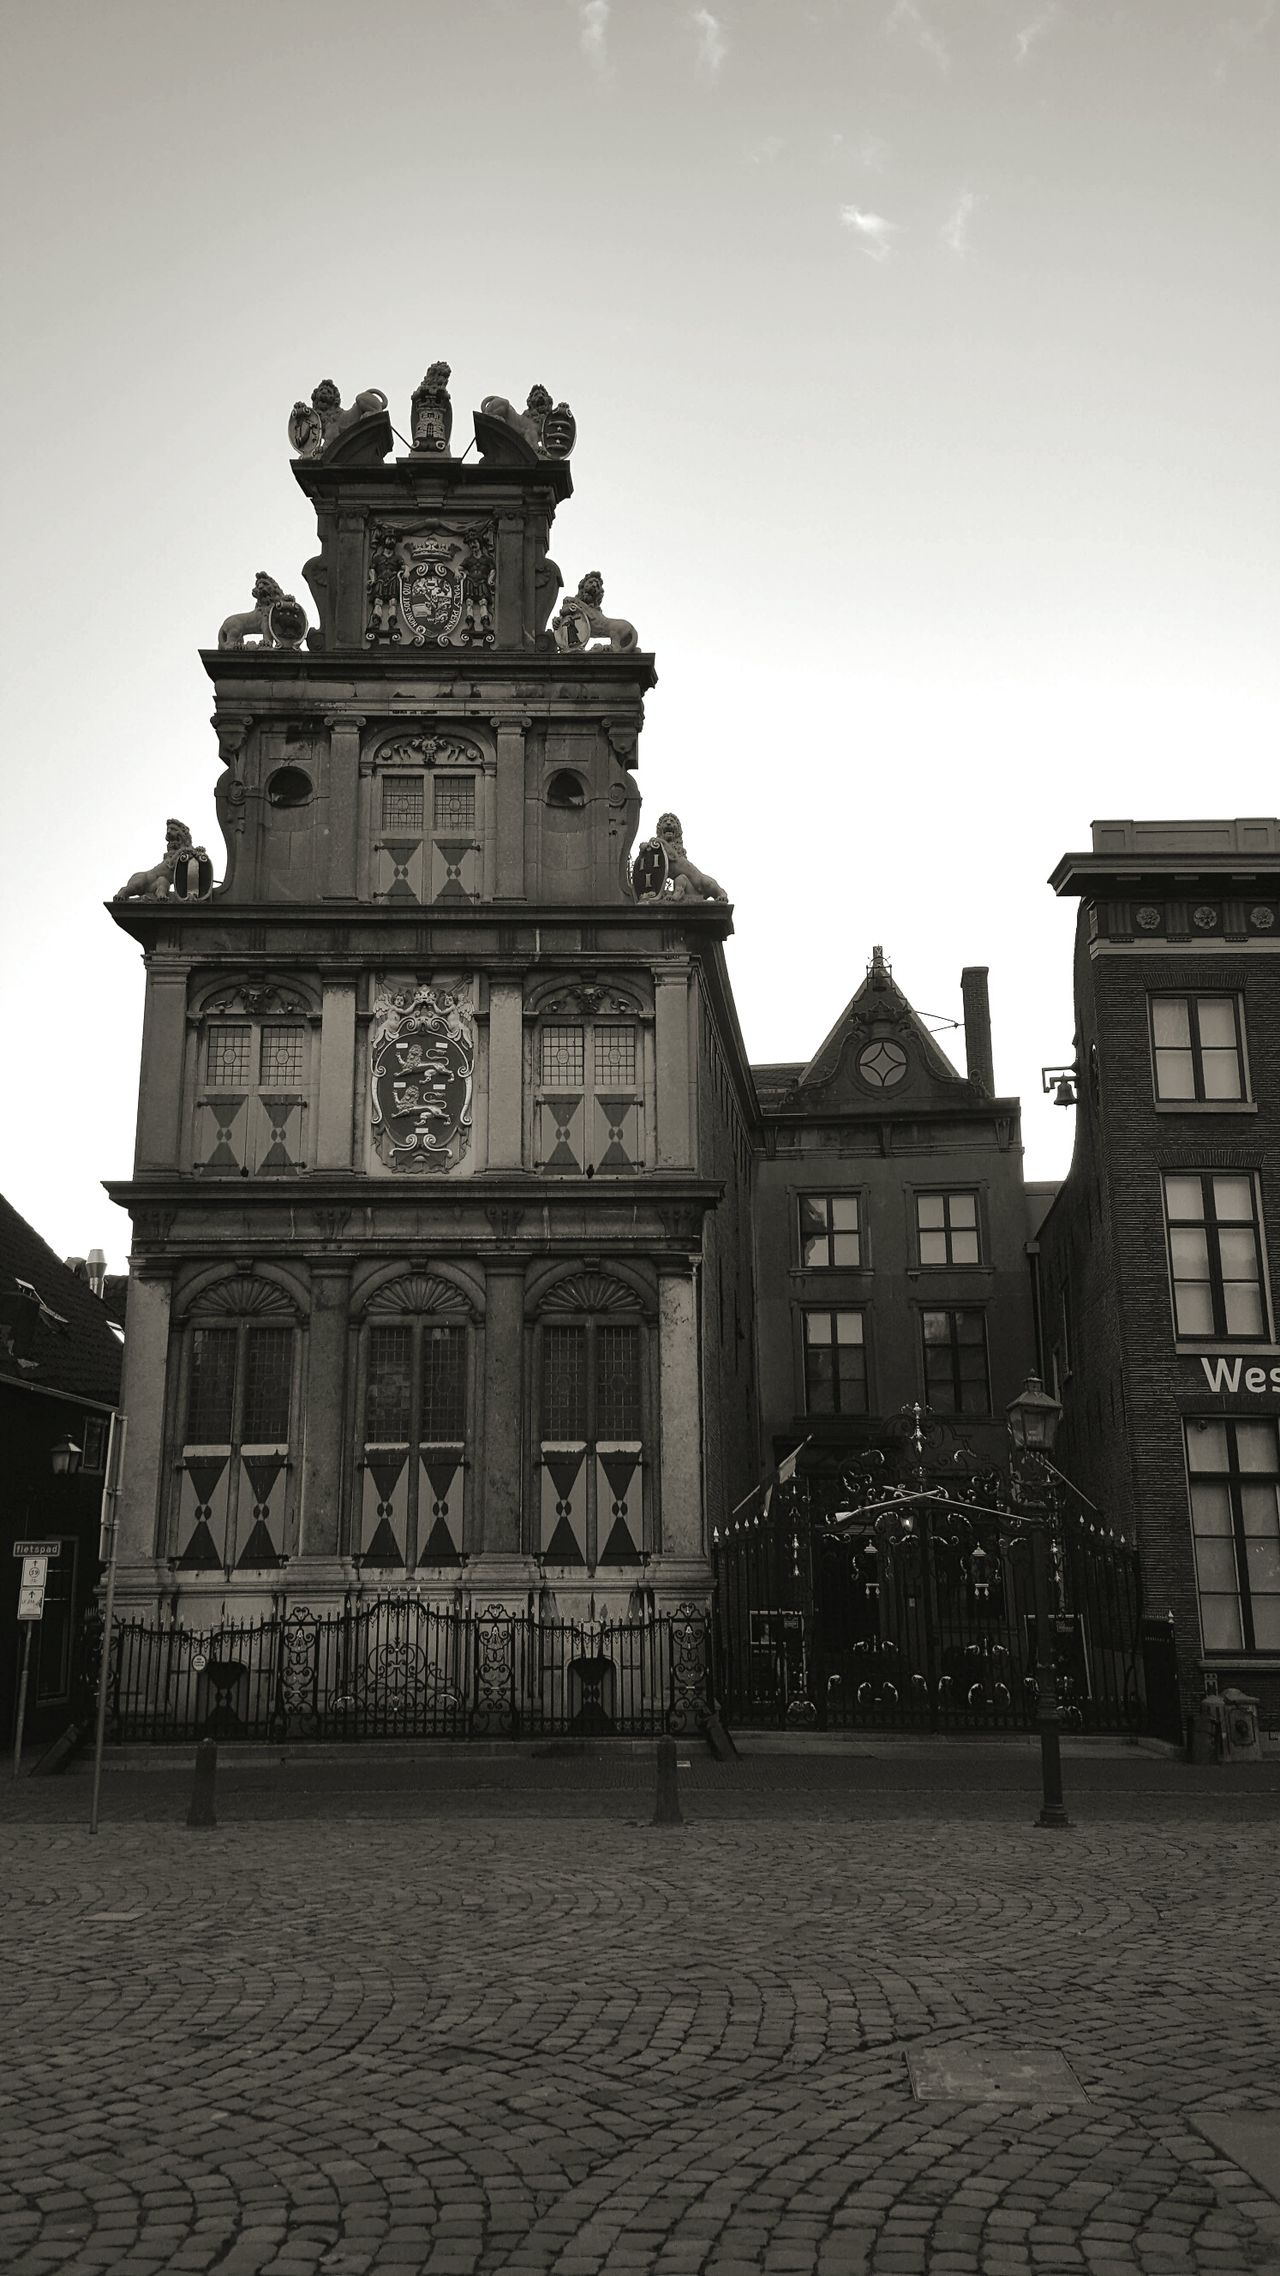 Travel City Architecture Travel Destinations Cultures History Cityscape Outdoors Blackandwhite Black And White Exploring New Ground Exploring Hoorn, Netherlands Hoorn Netherlands Old Town Old Buildings Dutch Architecture Dutch Cities Architecture_collection Taking Pictures Taking Photos Dutch House Architectural Detail Amazing Architecture